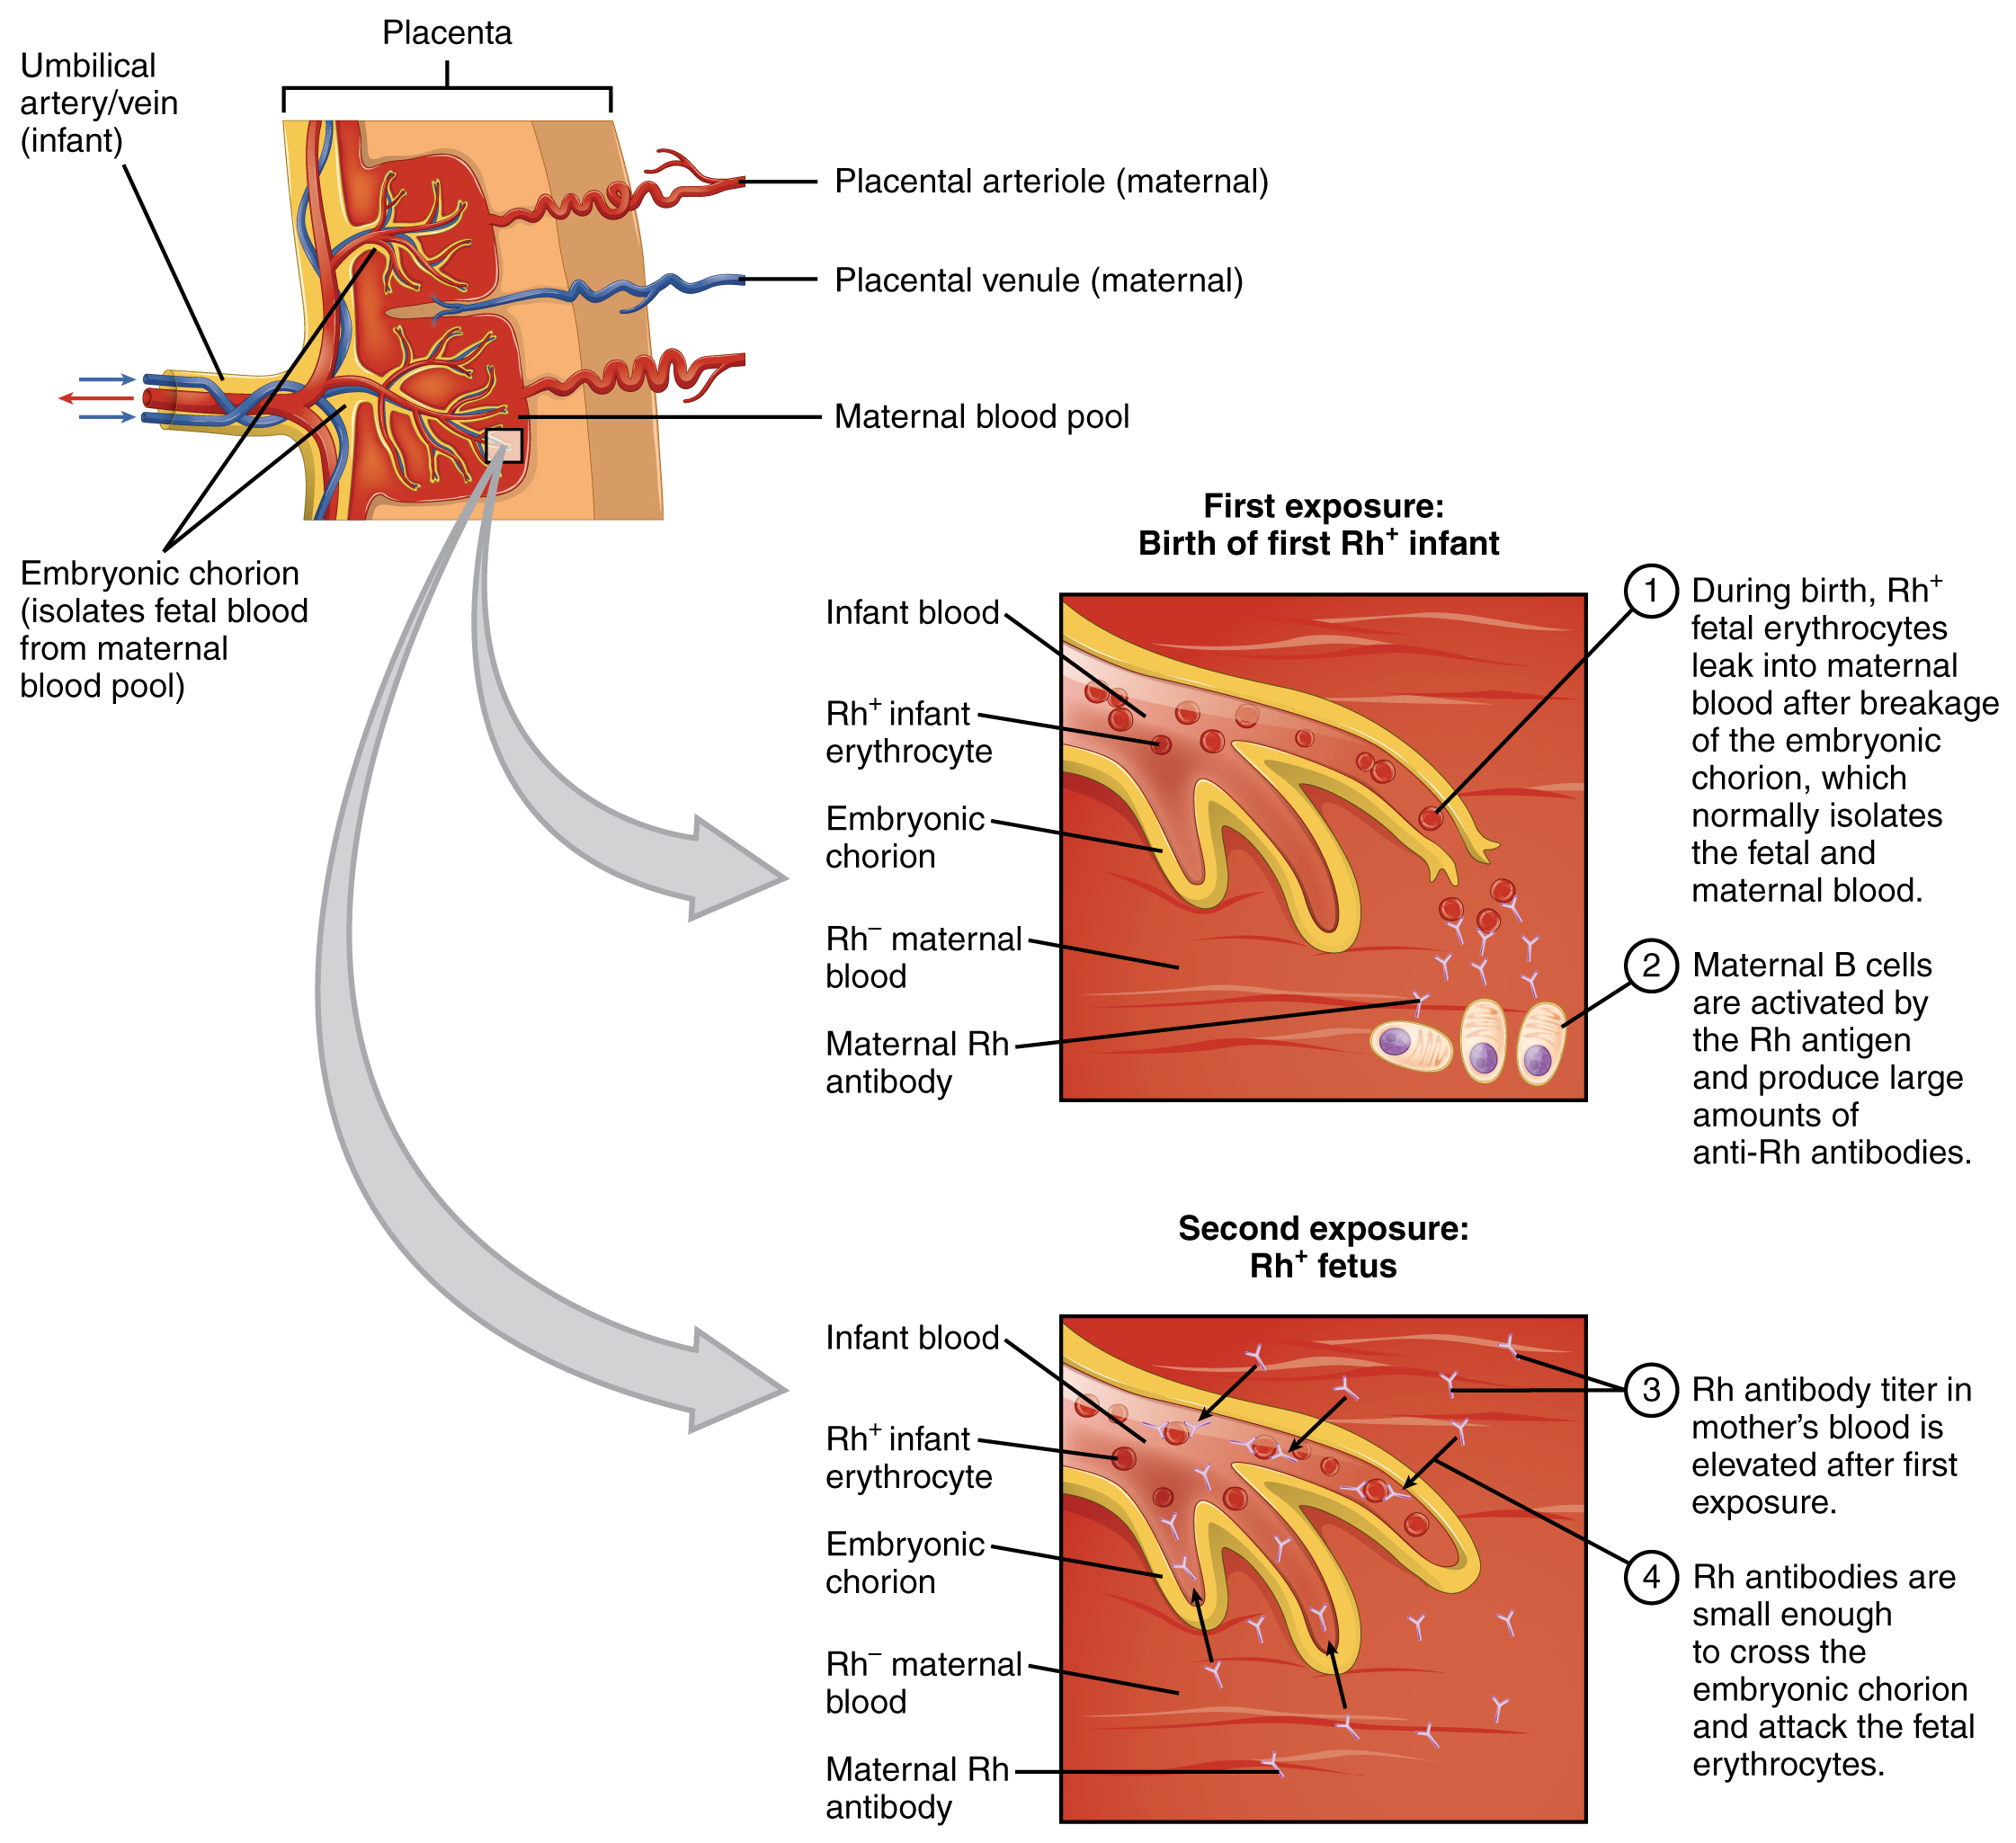 This figure shows an umbilical artery and vein passing through the placenta on the top left. The top right panel shows the first exposure to Rh+ antibodies in the mother. The bottom right panel shows the response when the second exposure in the form of another fetus takes place. Textboxes detail the steps in each process.